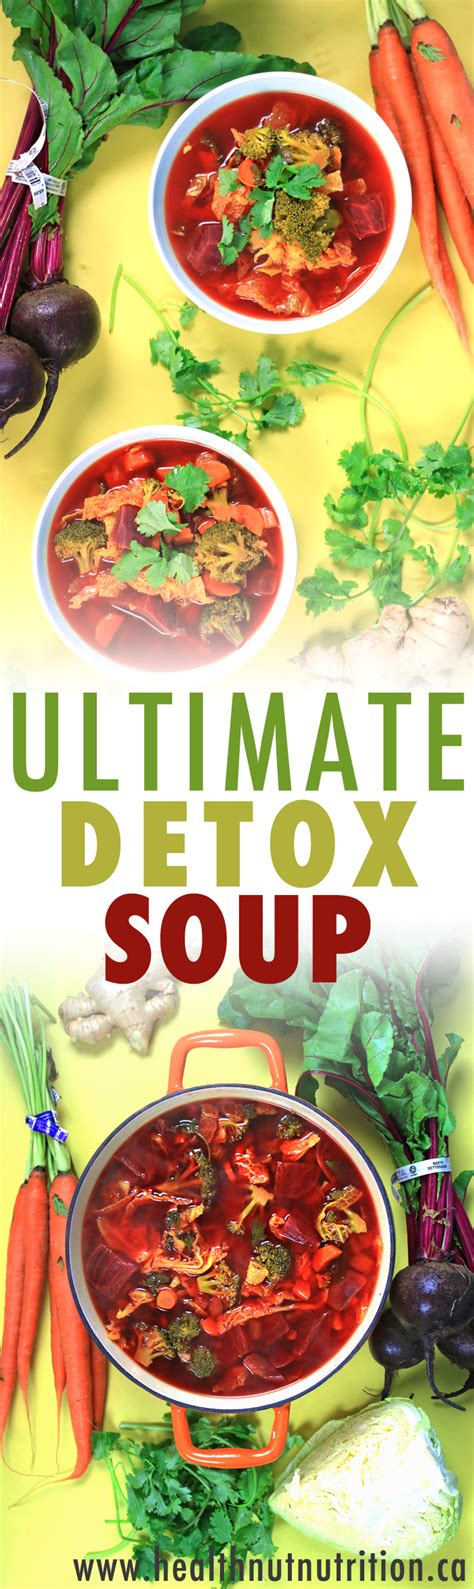 Ultimate Nutrition Vegetable Greens Detox by The Ultimate Detox Soup Healthnut Nutrition